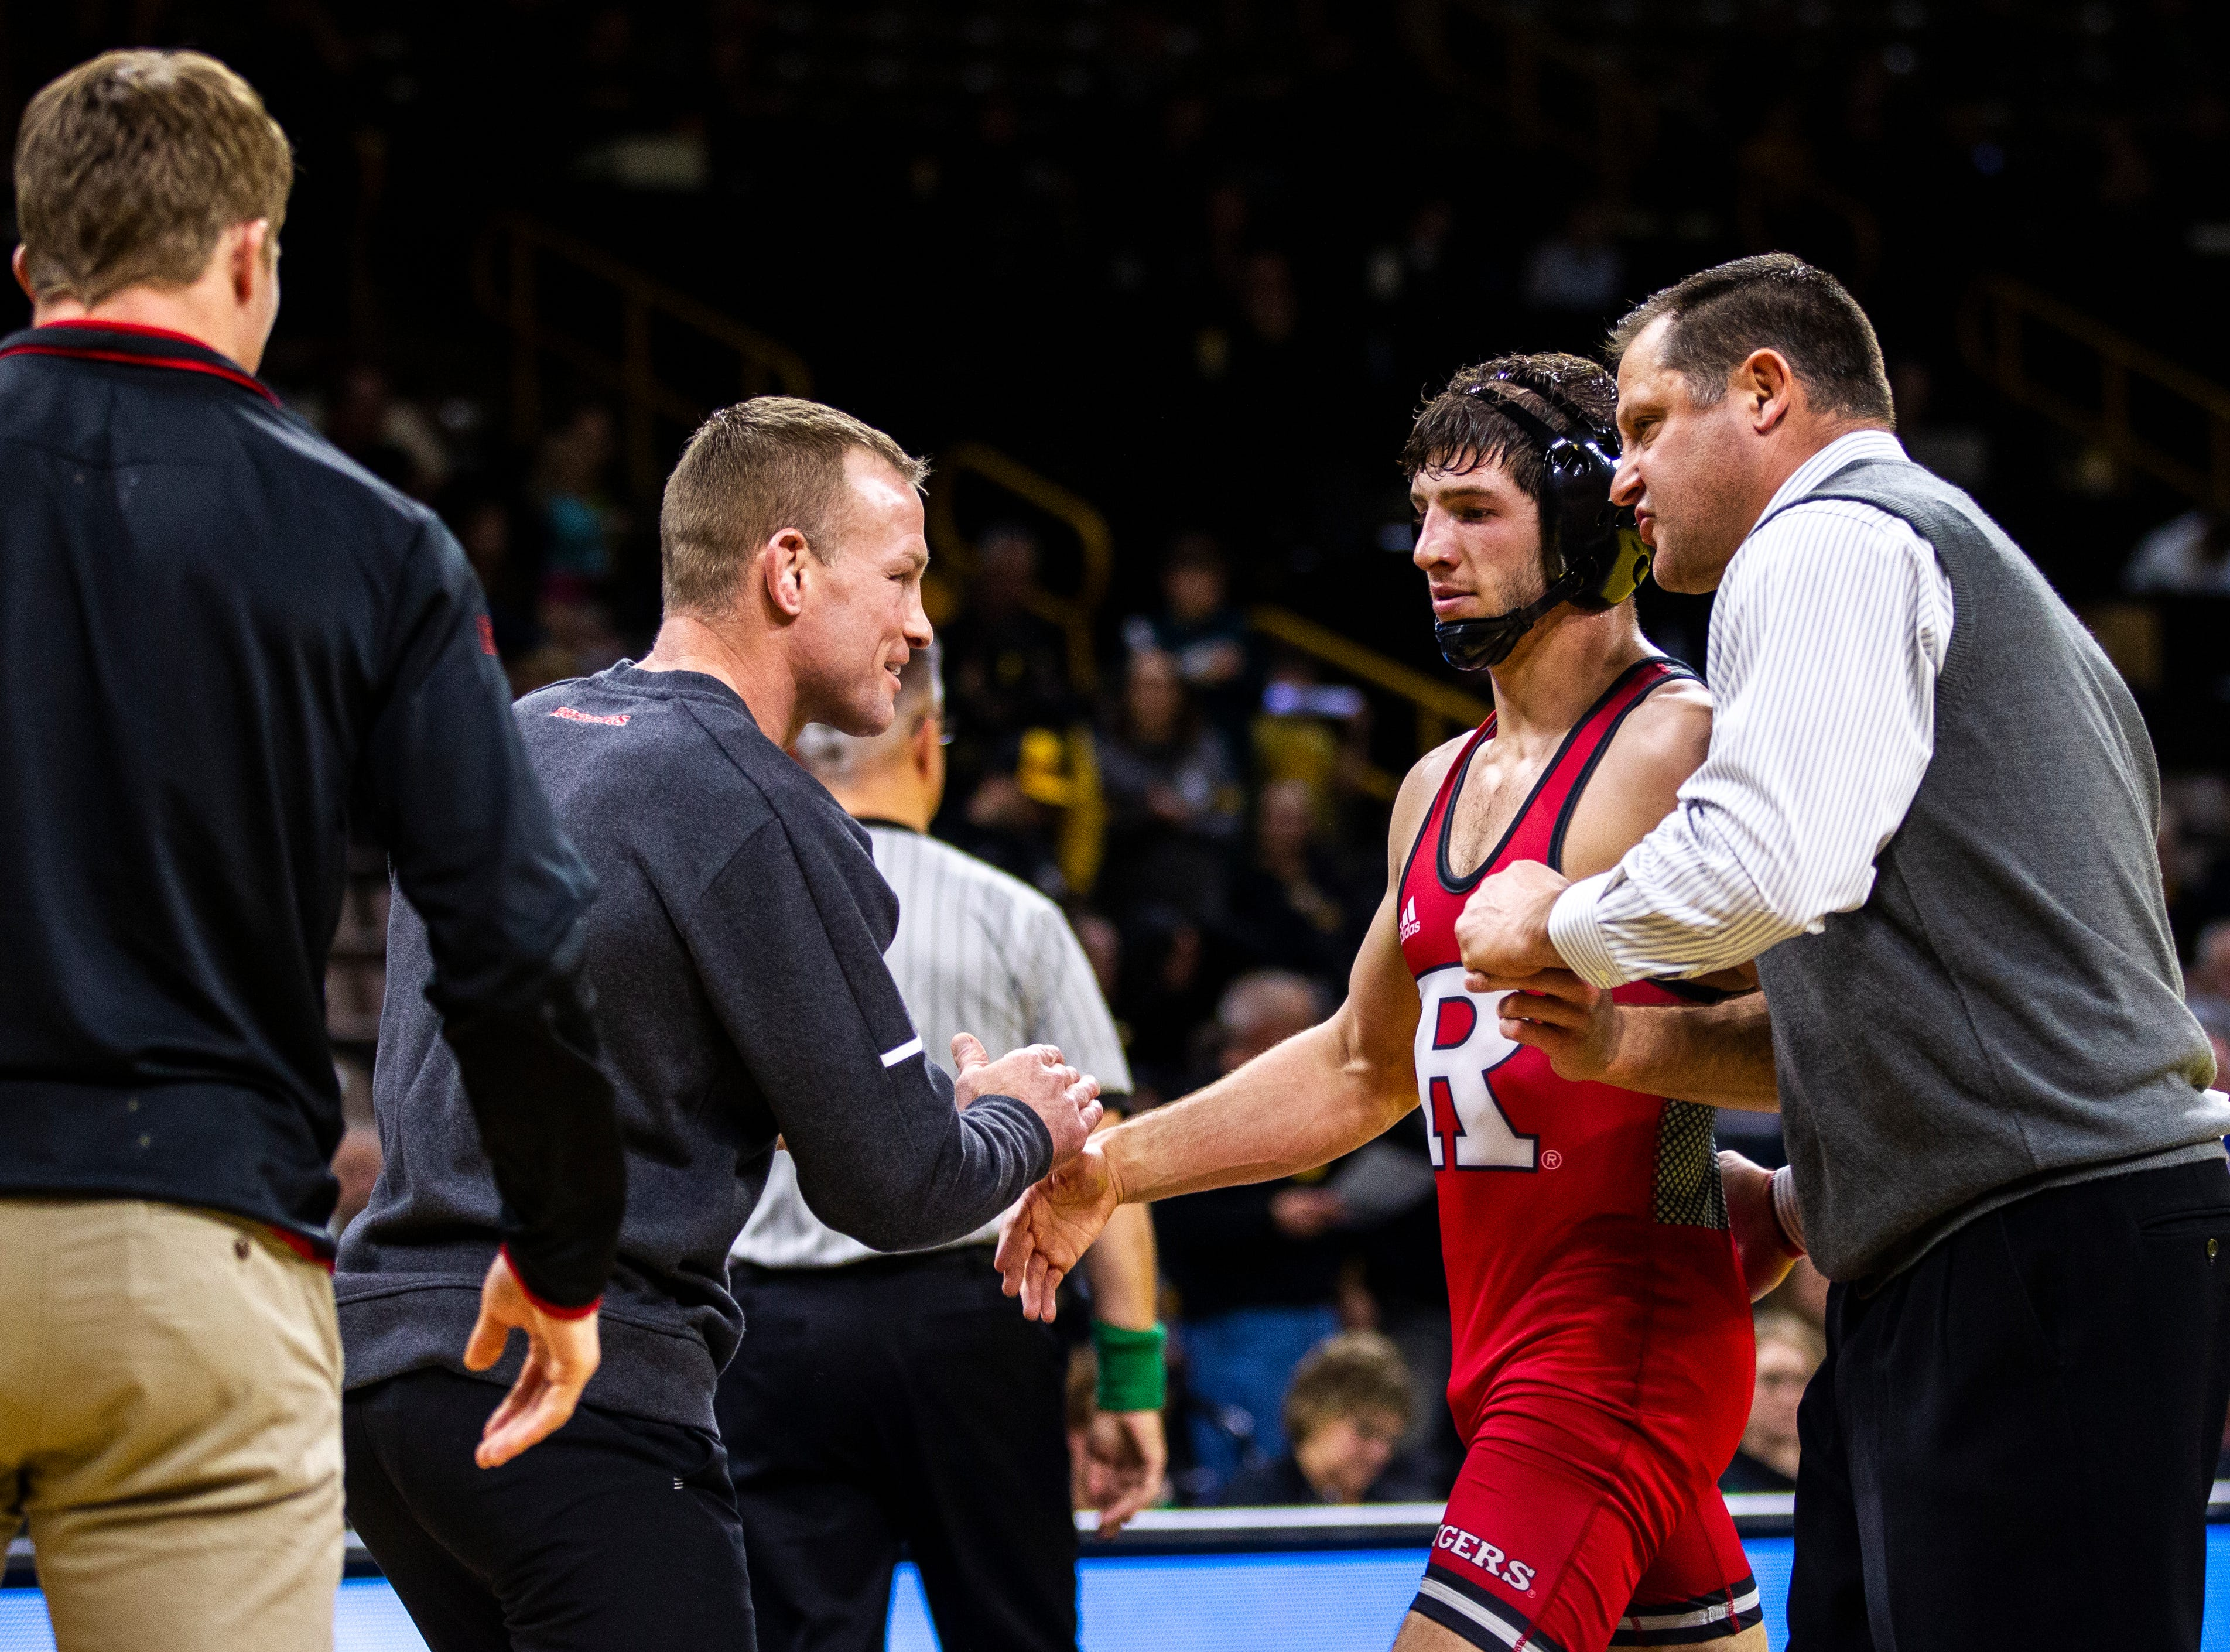 Rutgers' Anthony Ashnault is embraced by coaches during a NCAA Big Ten Conference wrestling dual on Friday, Jan. 18, 2019, at Carver-Hawkeye Arena in Iowa City, Iowa.